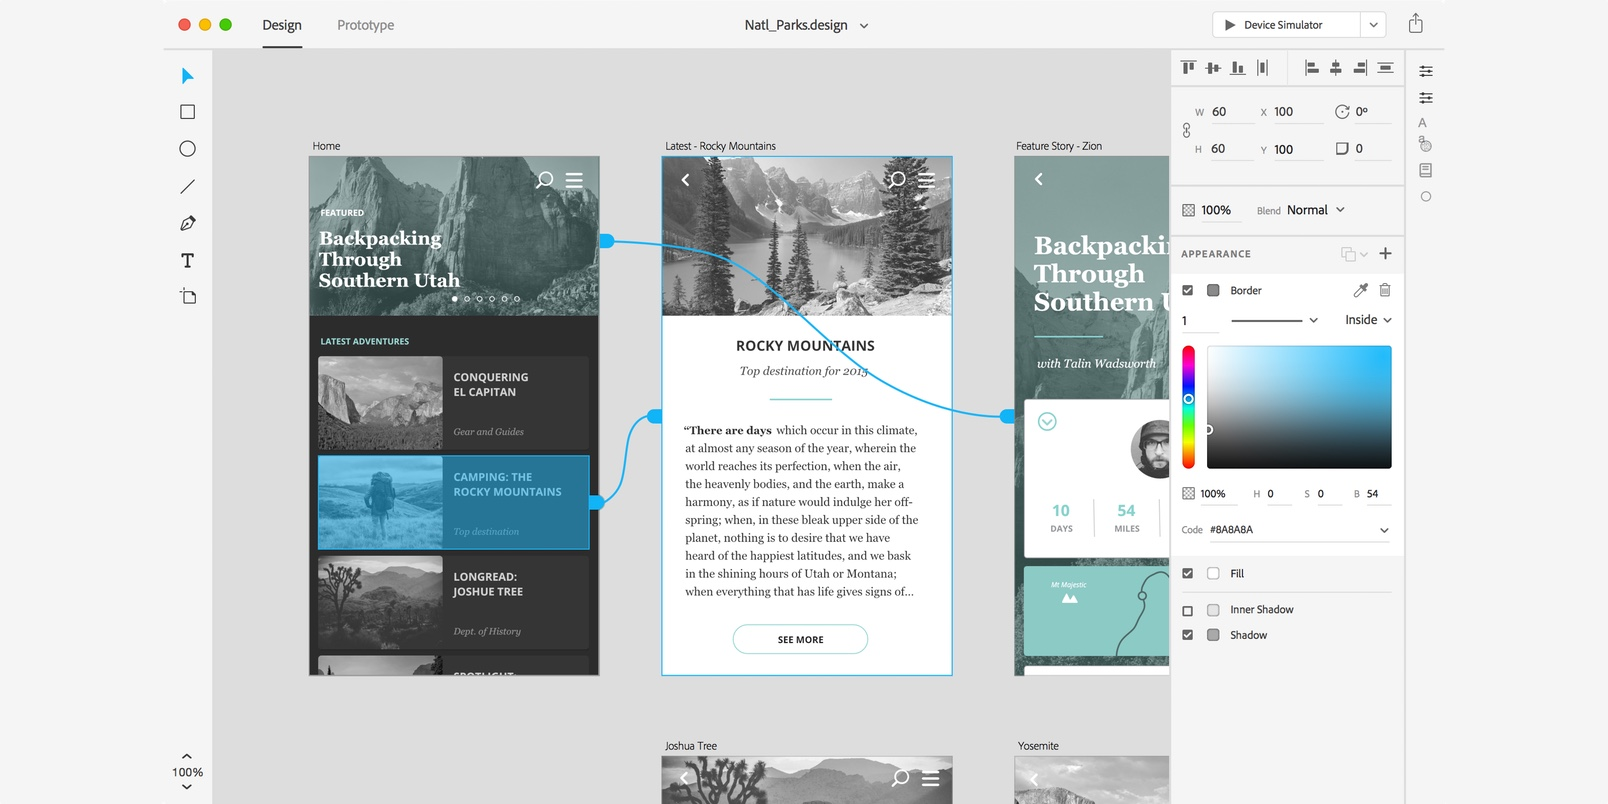 Adobe launches Project Comet as 'Experience Design'